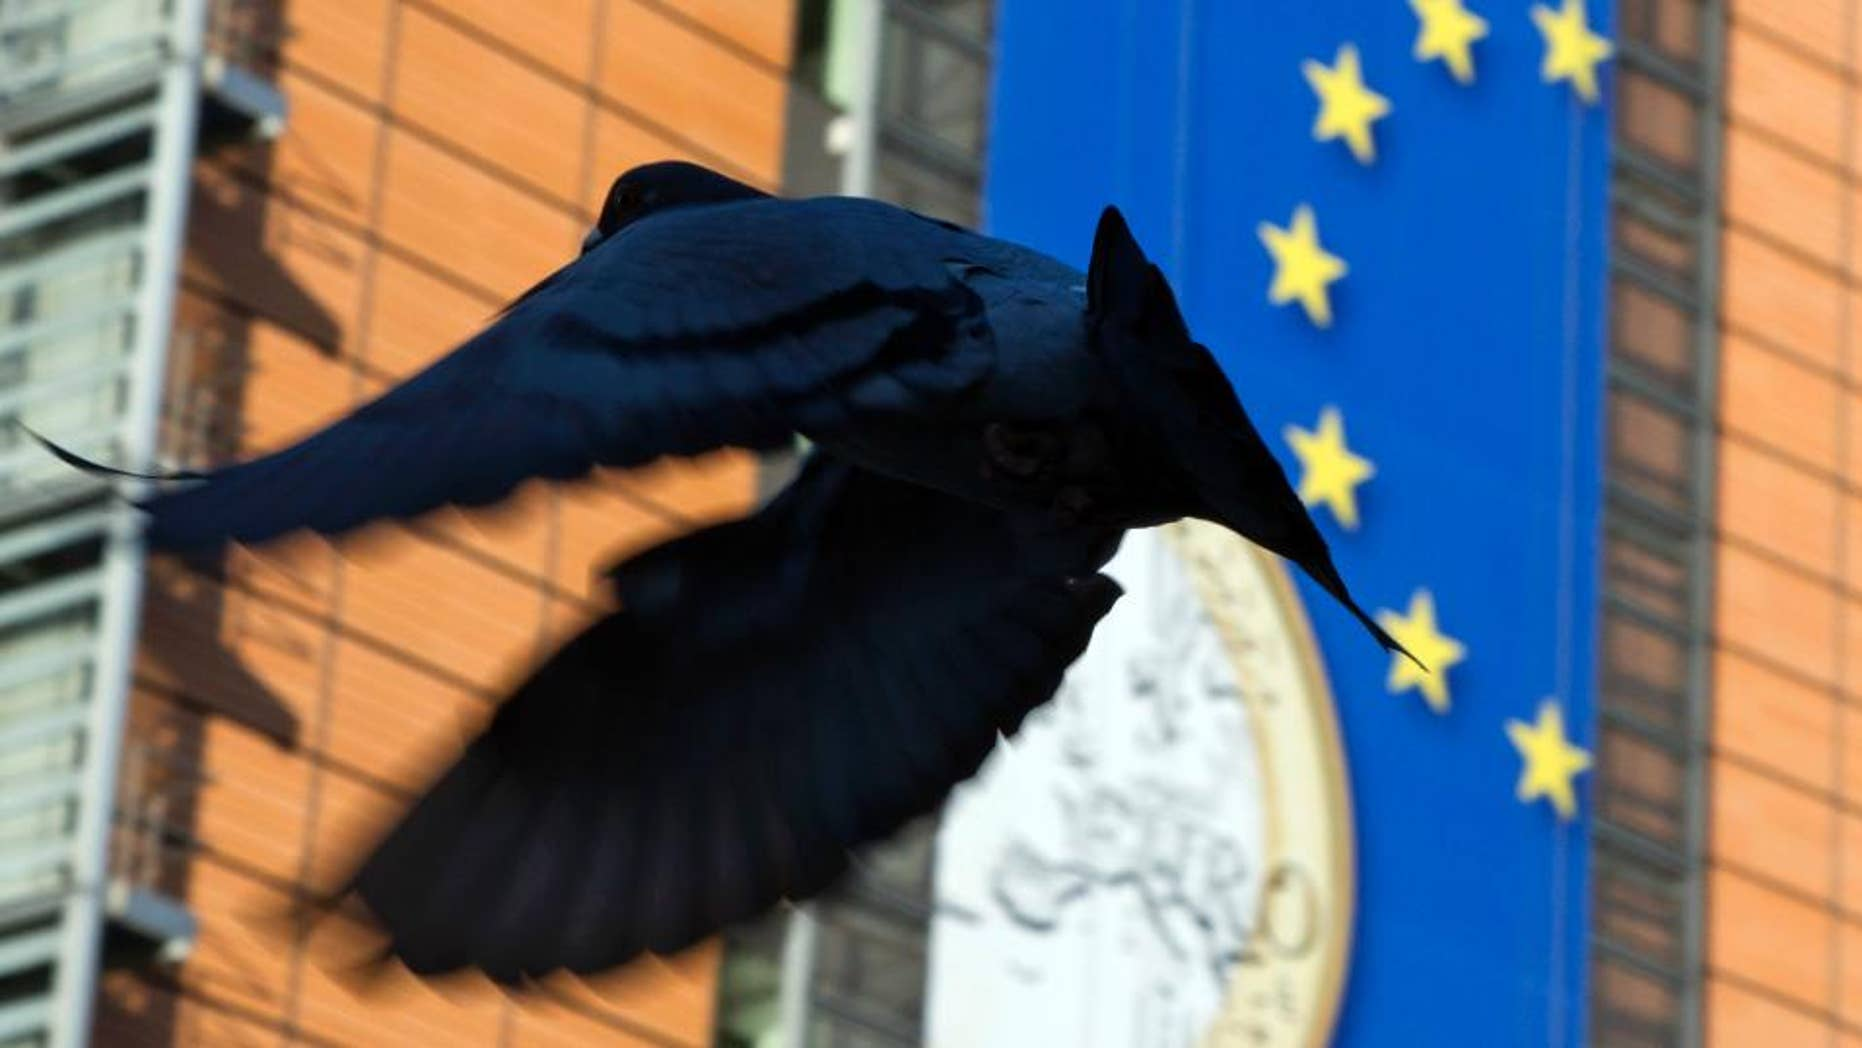 WITH STORY BRITAIN EU FUTURE - In this Nov. 20, 2012 file photo, a bird flies in front of a giant banner for the euro currency in front of EU headquarters in Brussels. Issues such as migration, economic stagnation and terror attacks could weigh heavily on voters minds when they go to the polls to cast their ballot during the In-Out EU referendum which takes place on June 23, 2016. (AP Photo/Virginia Mayo, File)